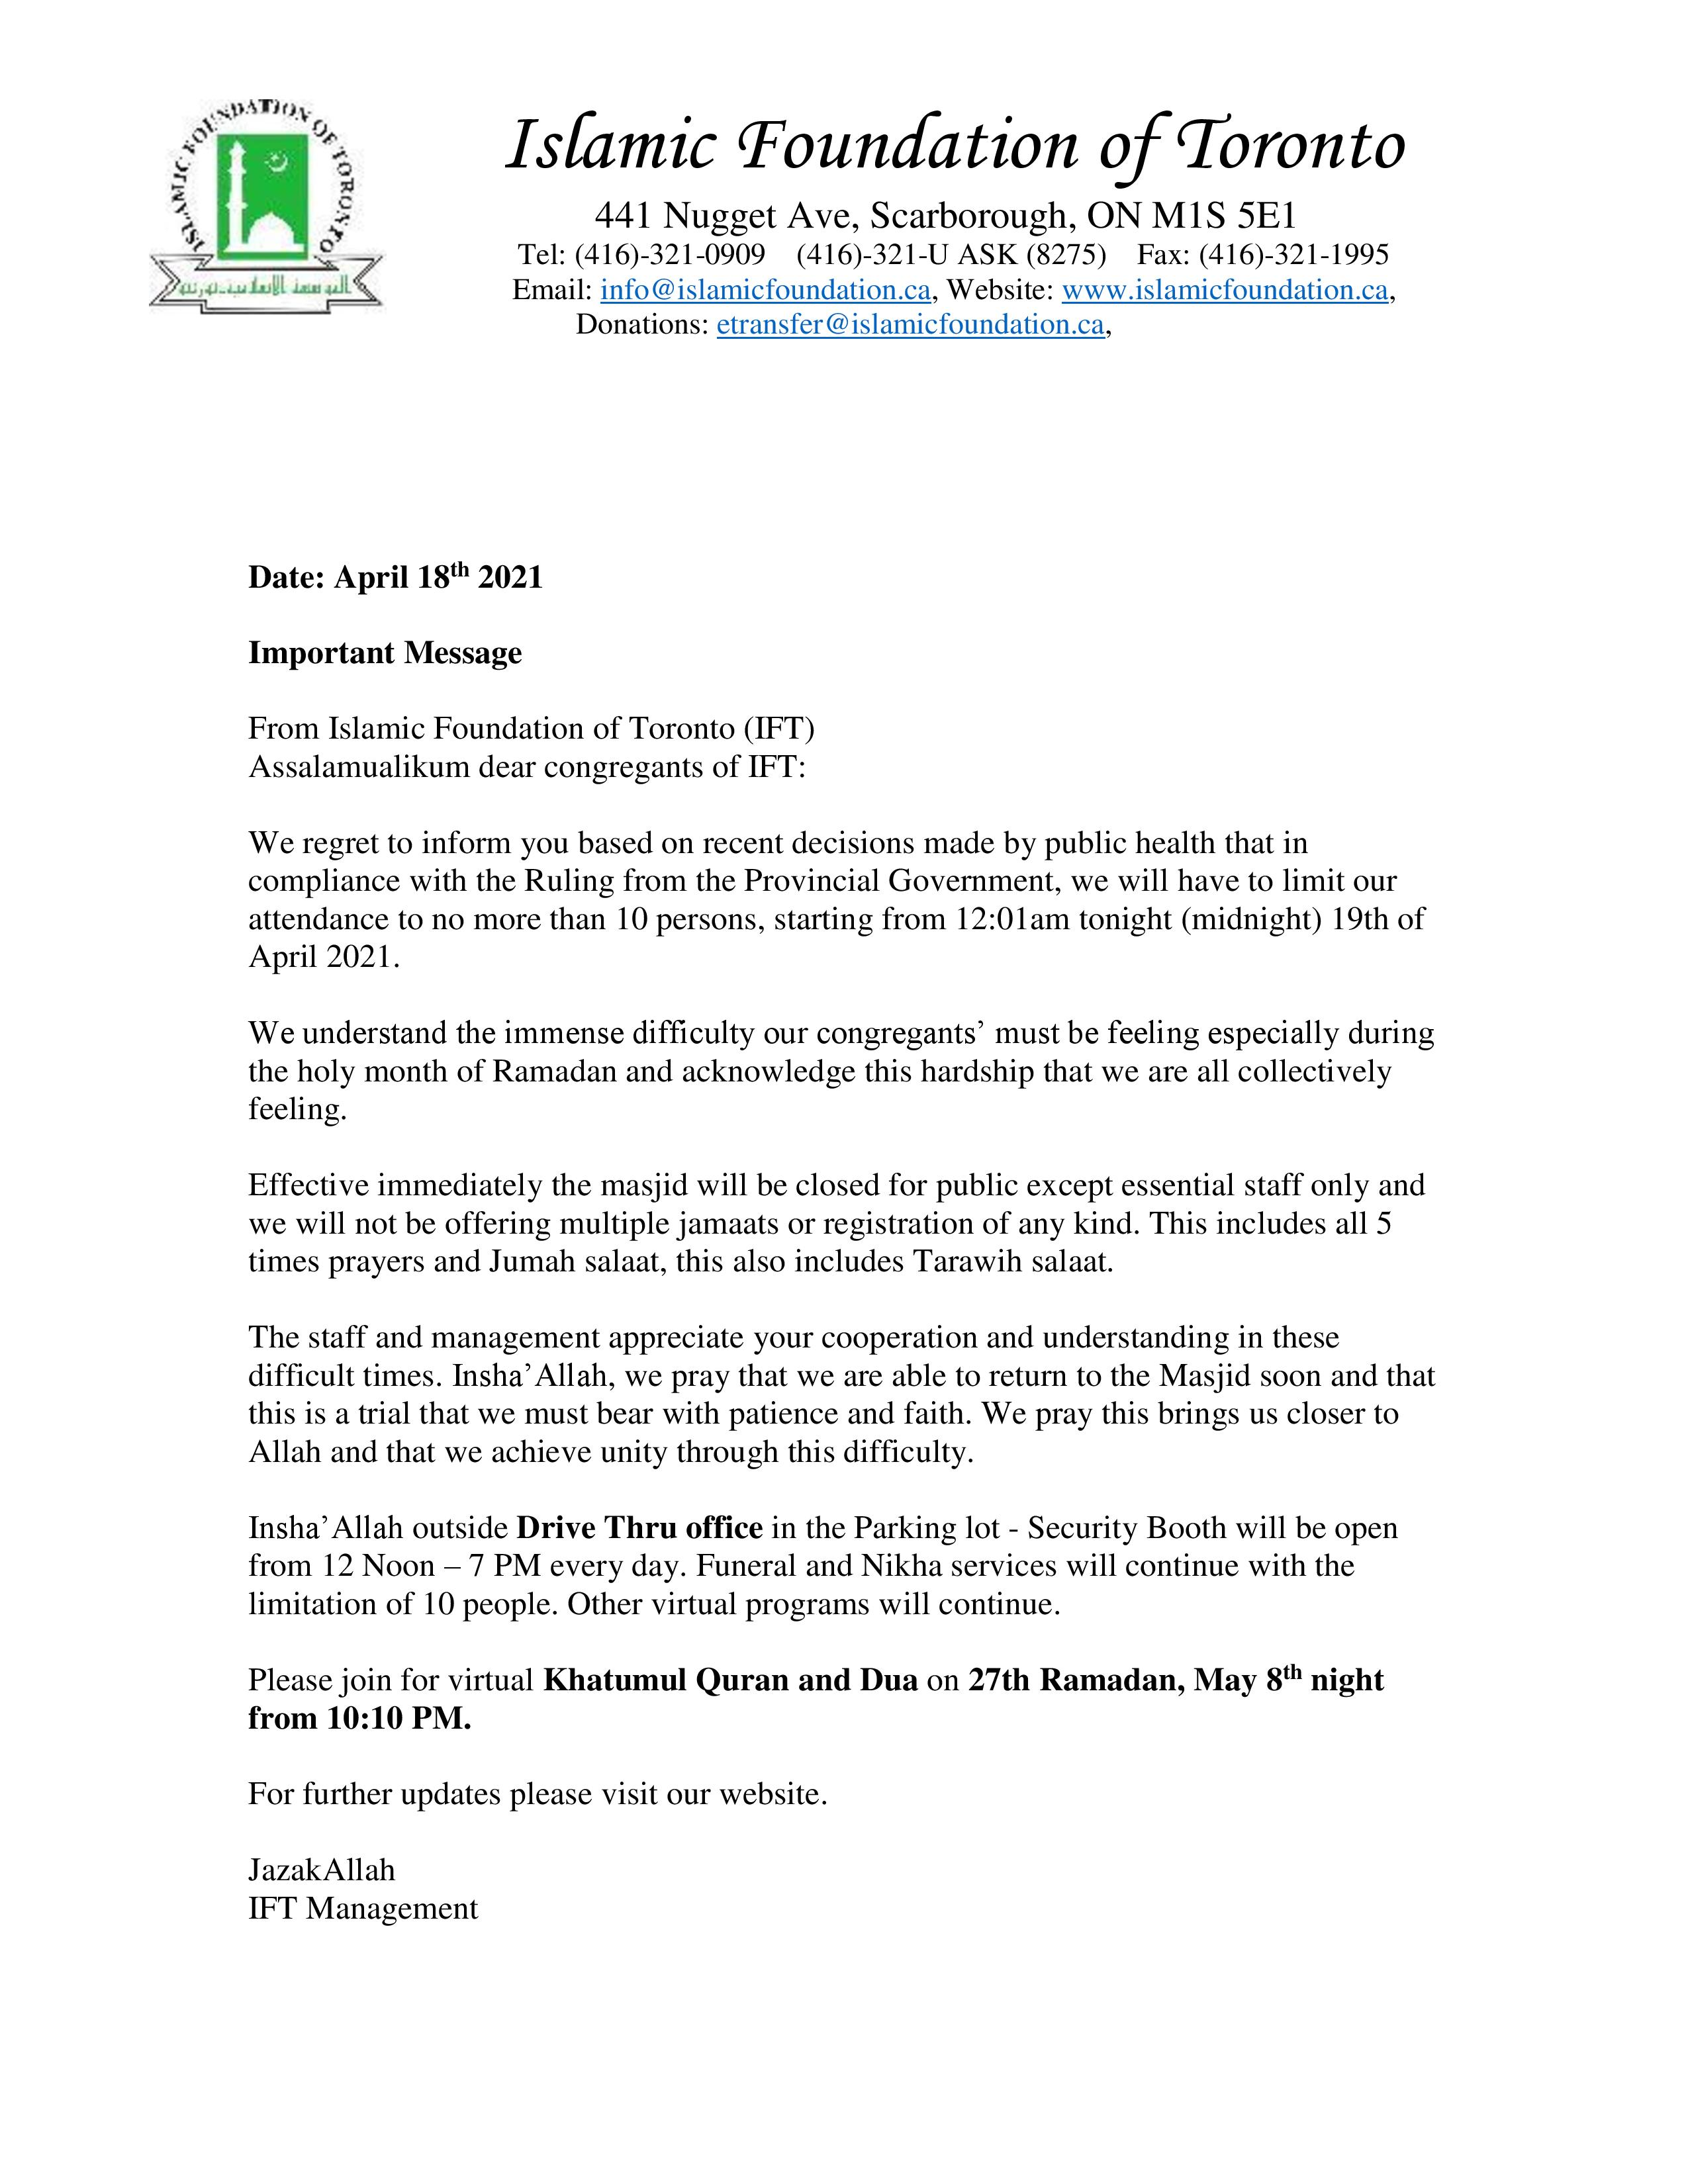 IFT Letter Head revised-page-001.jpg